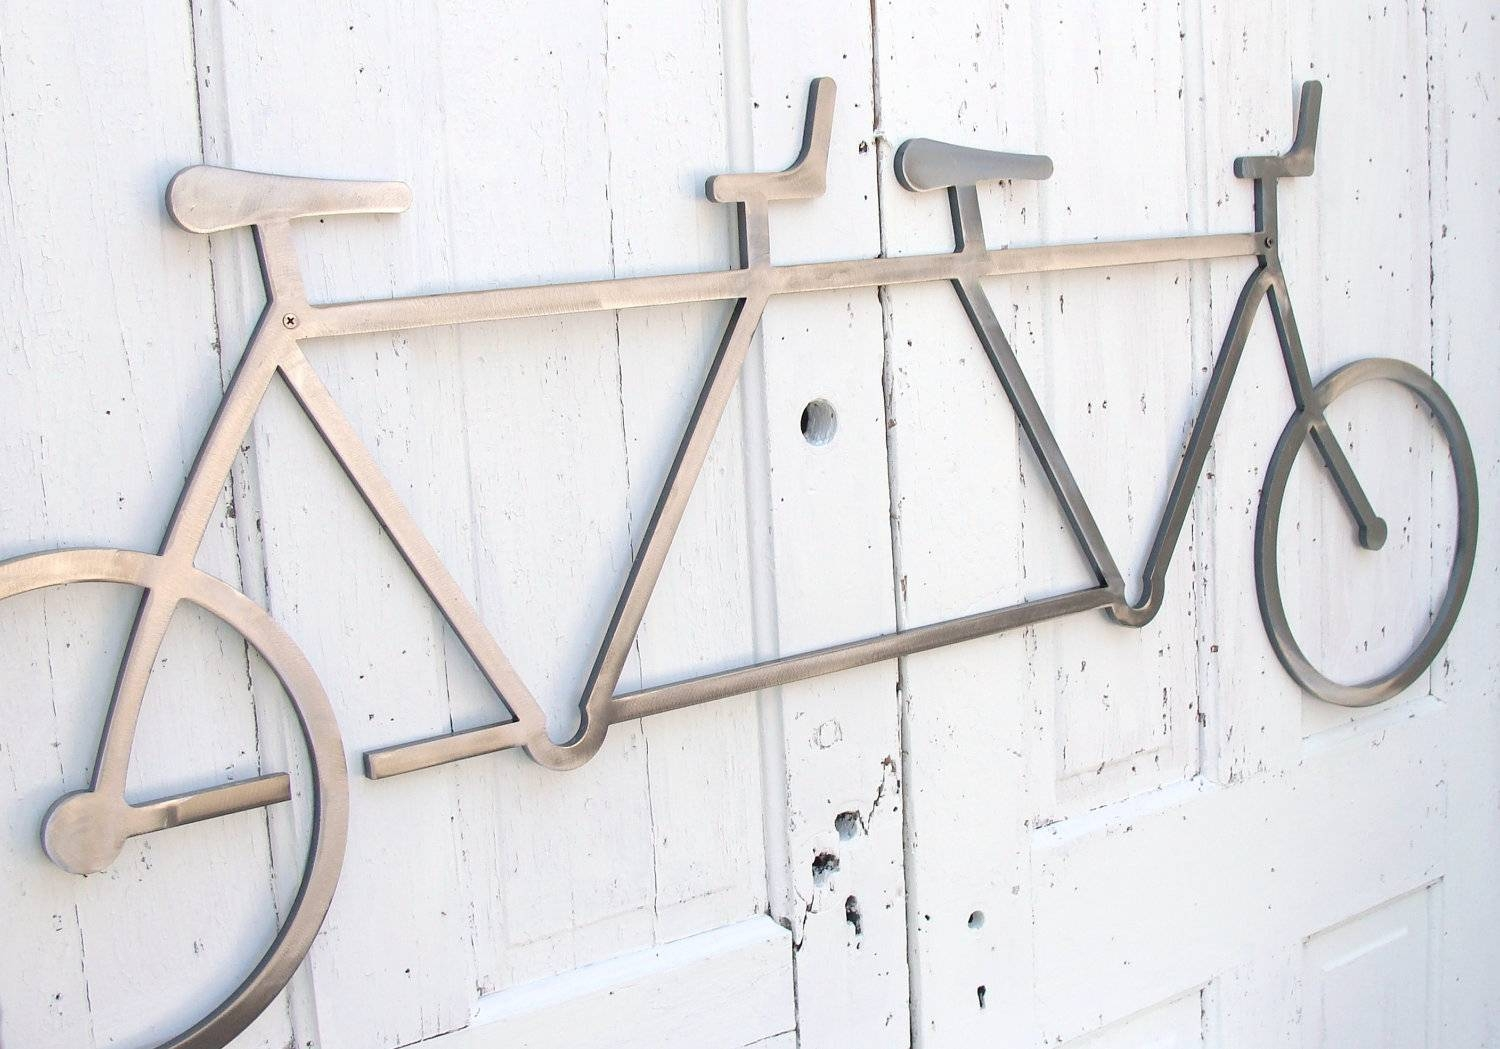 Bicycle Wall Art Decor Tandem Bike Wall Hanging Bike Decor Intended For Most Recently Released Bicycle Wall Art Decor (View 6 of 20)